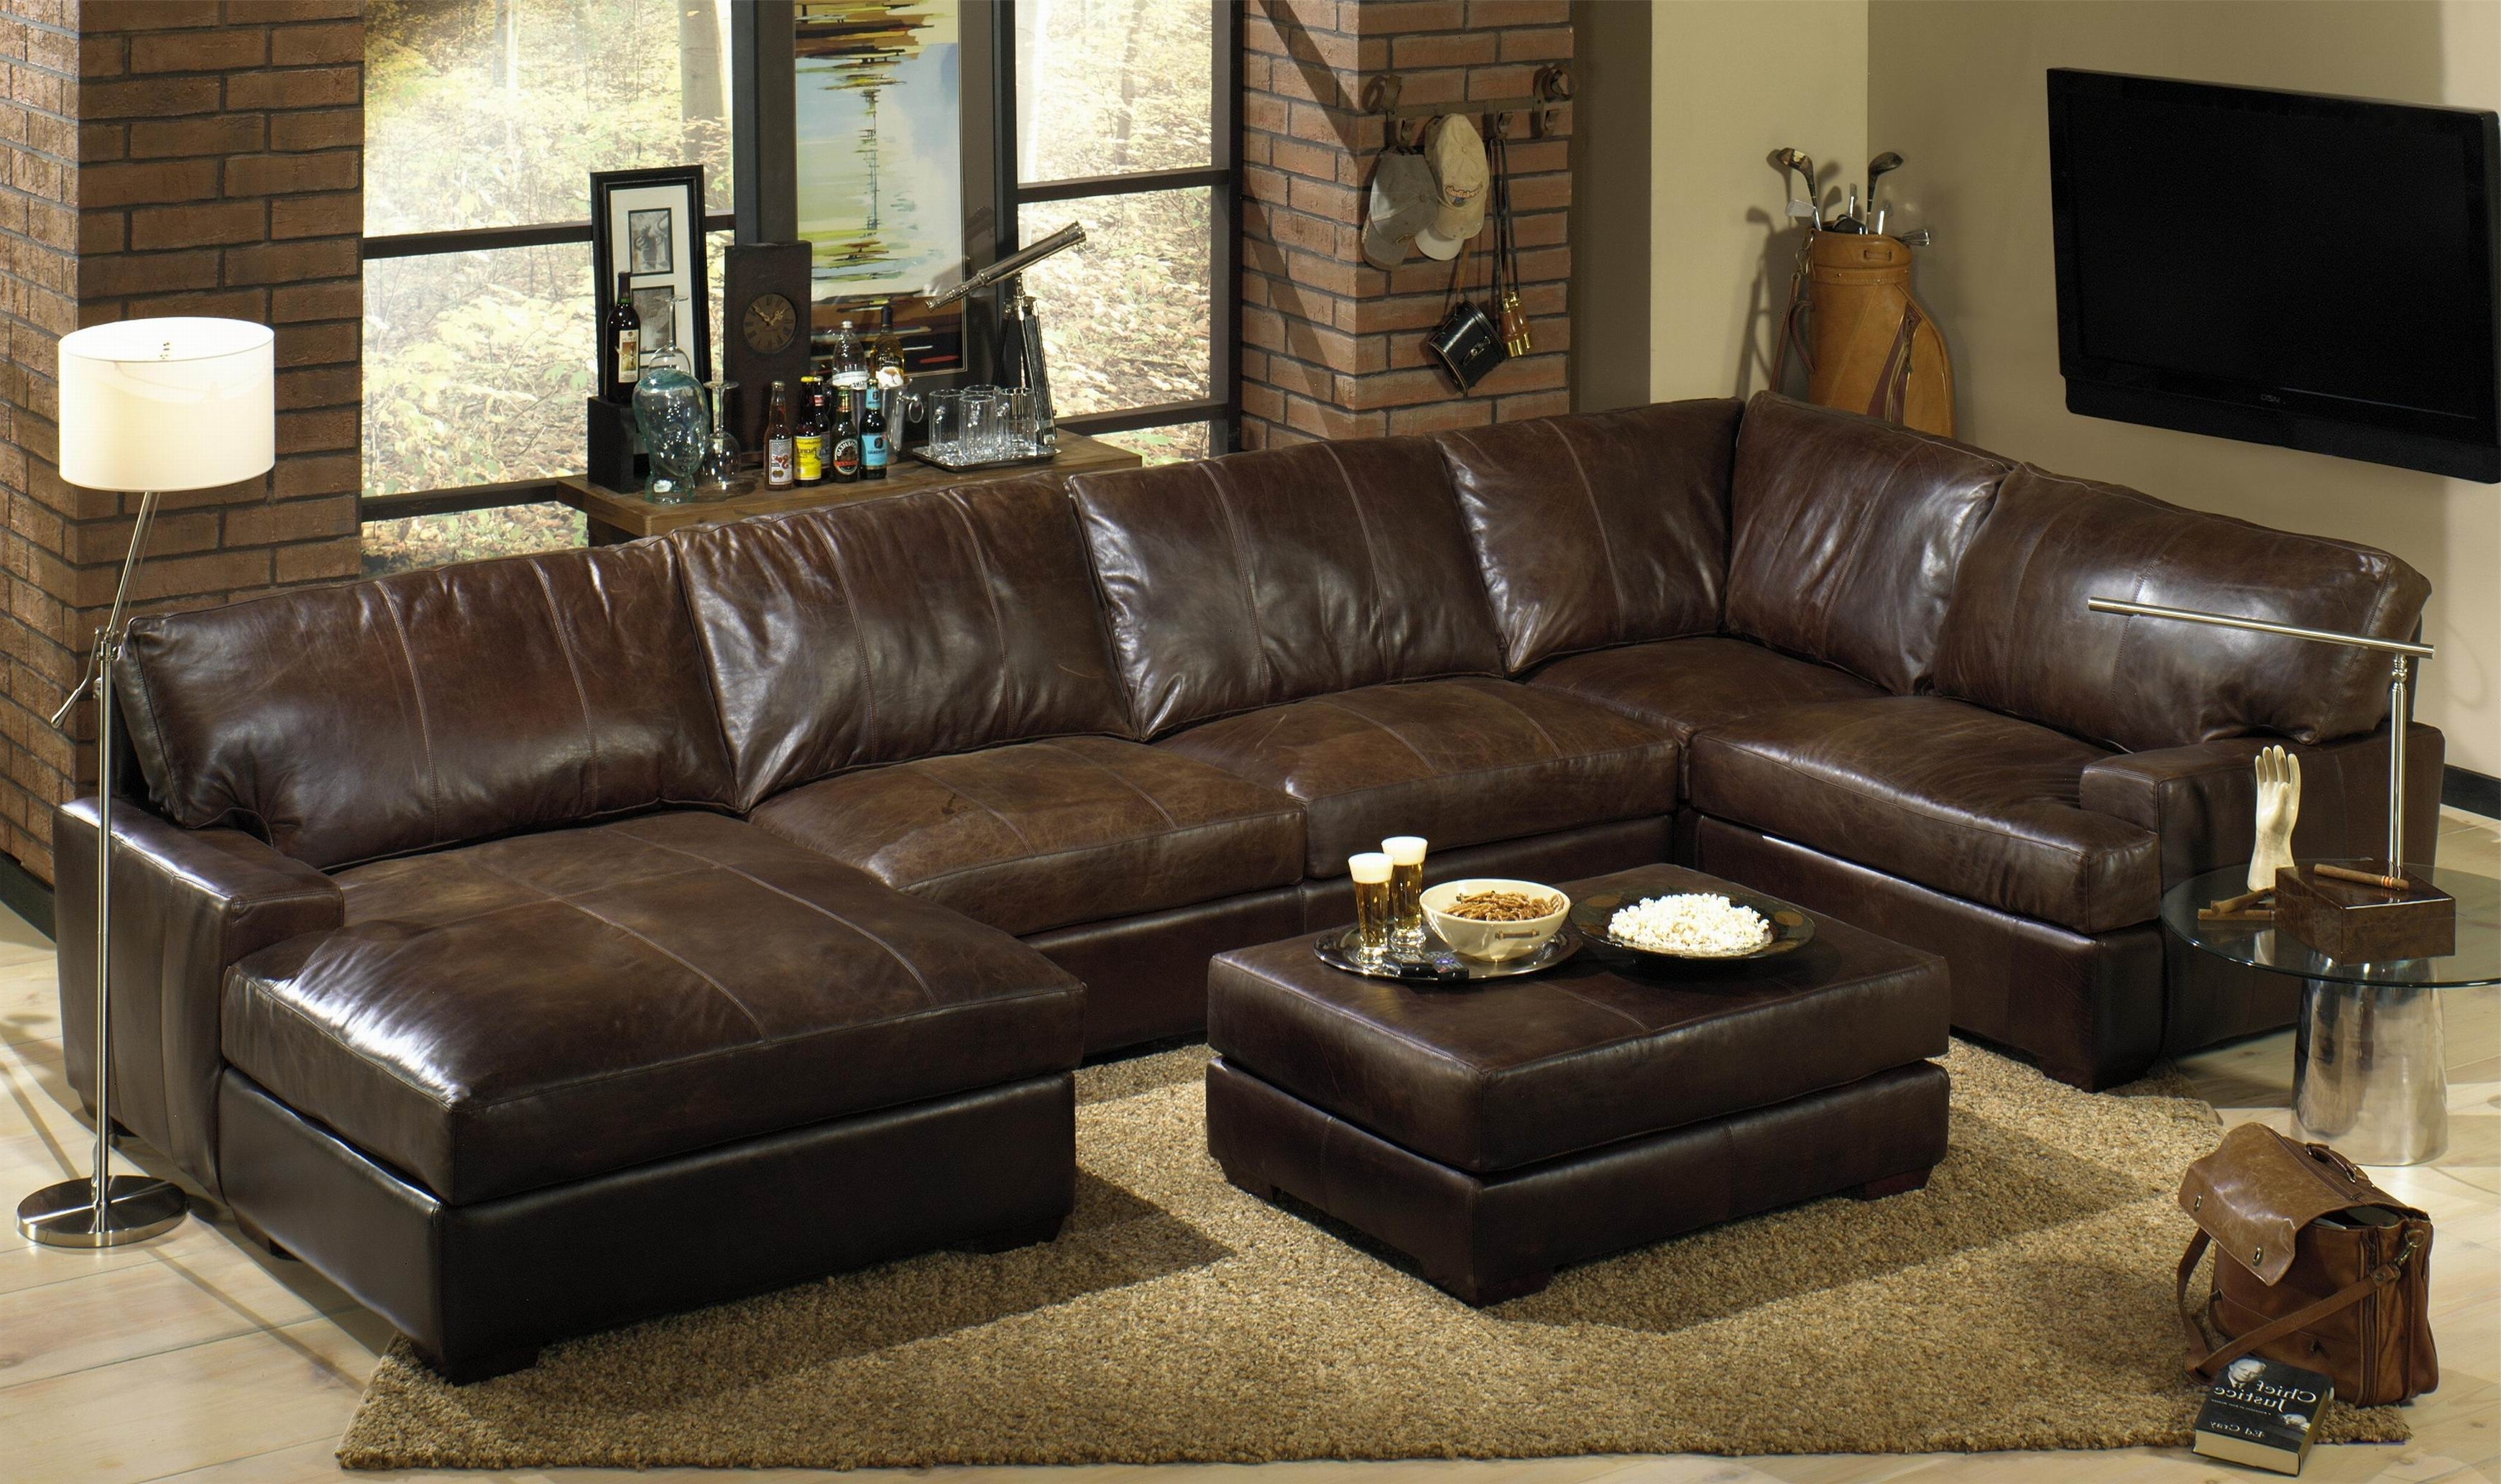 Vogue Bonded Leather Reversible Chaise Sectional Sofa Brown With Inside Most Current Leather Sectionals With Chaise And Ottoman (View 2 of 15)